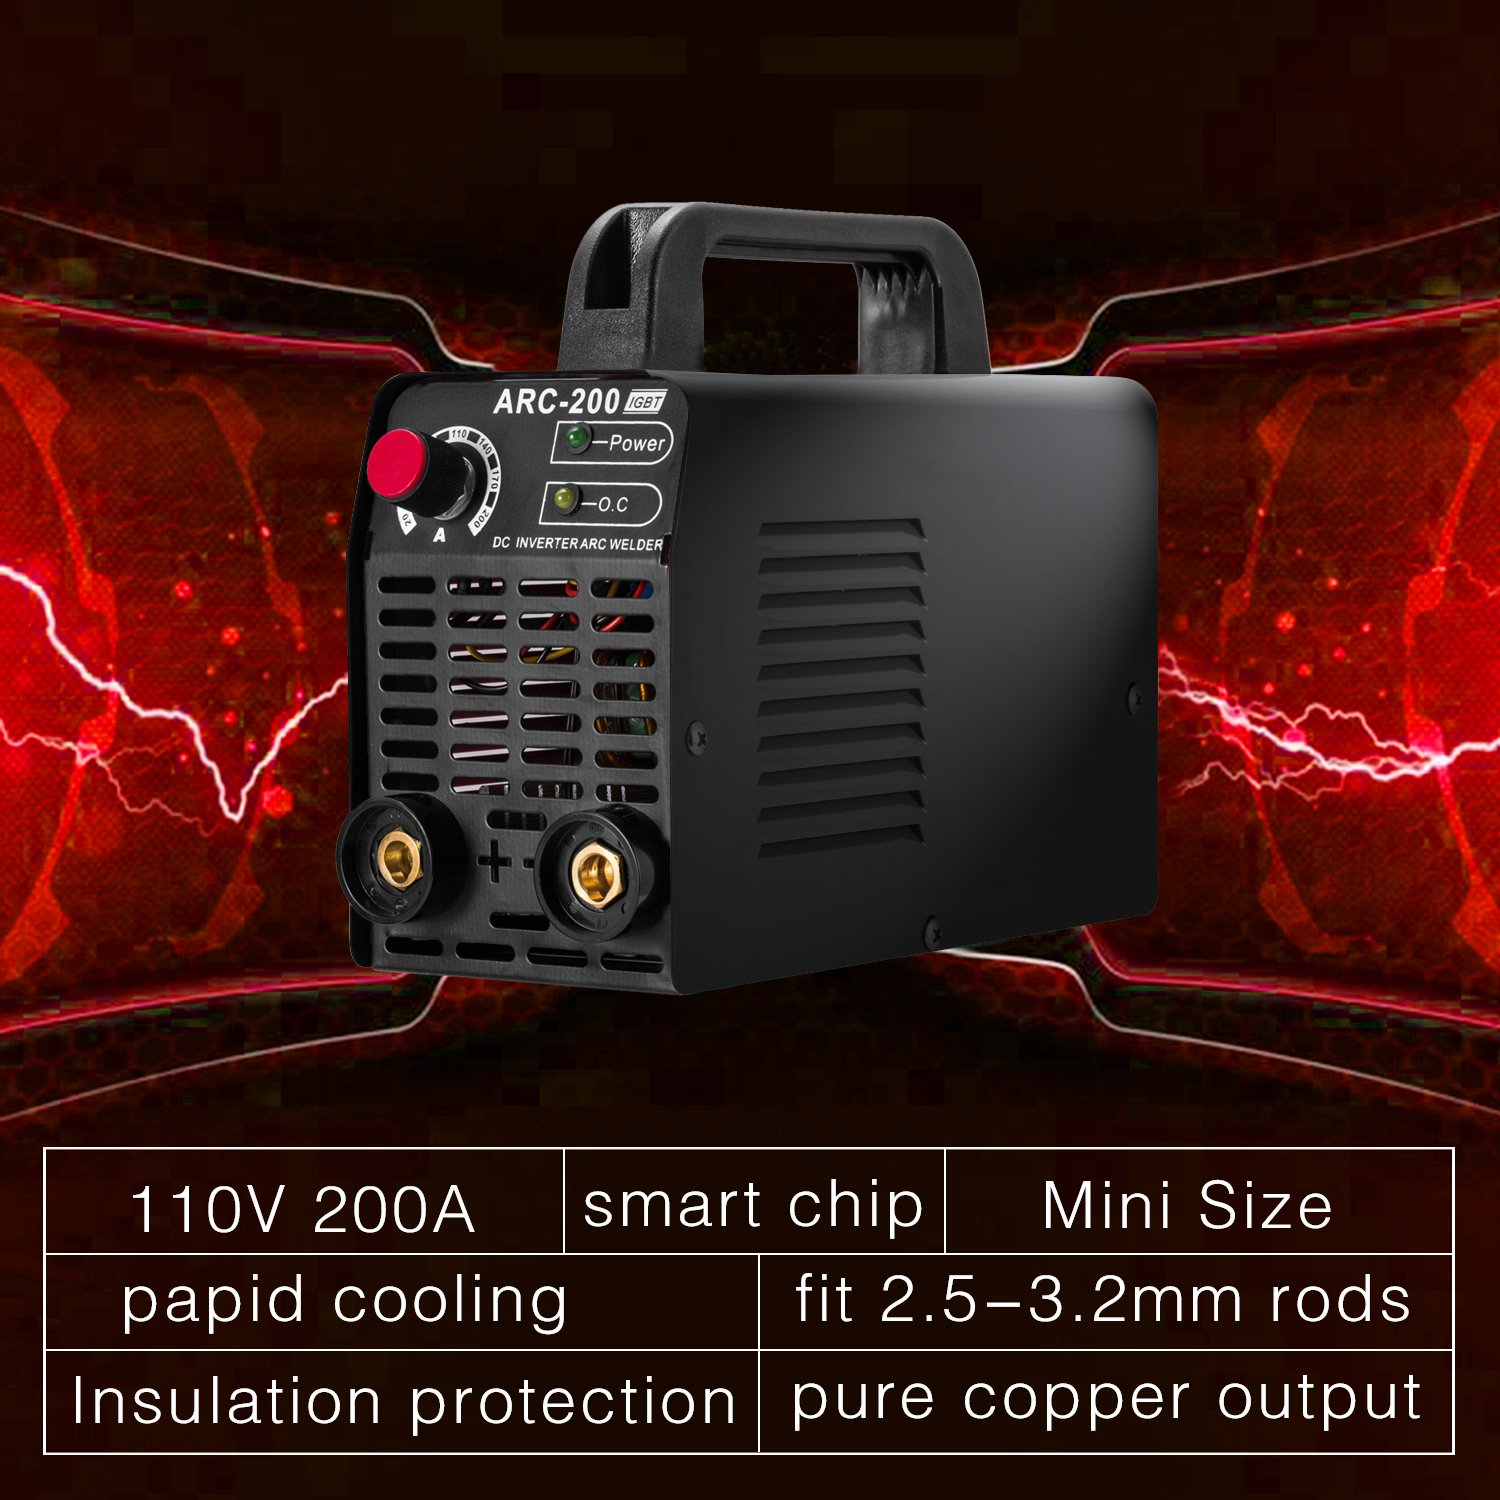 Arc Welder 110v 200amp Welding Machine Igbt Inverter Ac Dc Mini Circuit Of Arc200 View Electric Welders Free Accessories Tools High Frequency Household Smart For Novice